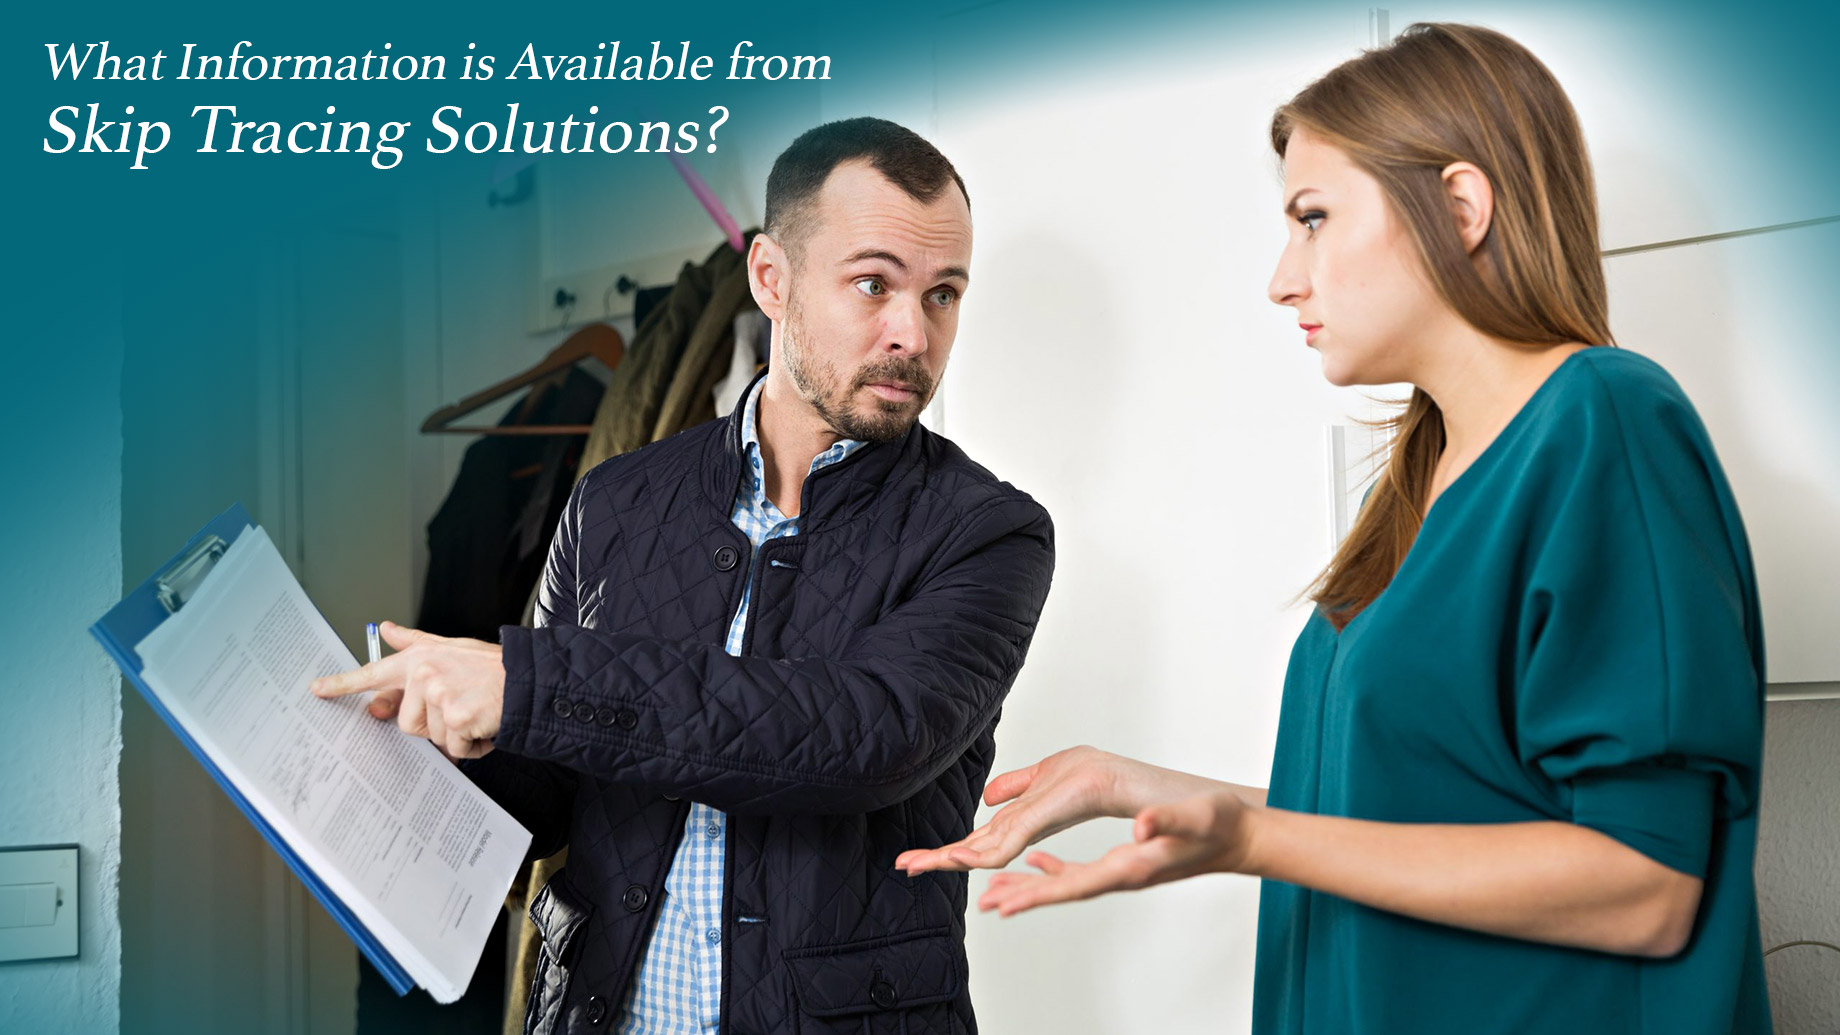 What Information is Available from Skip Tracing Solutions?